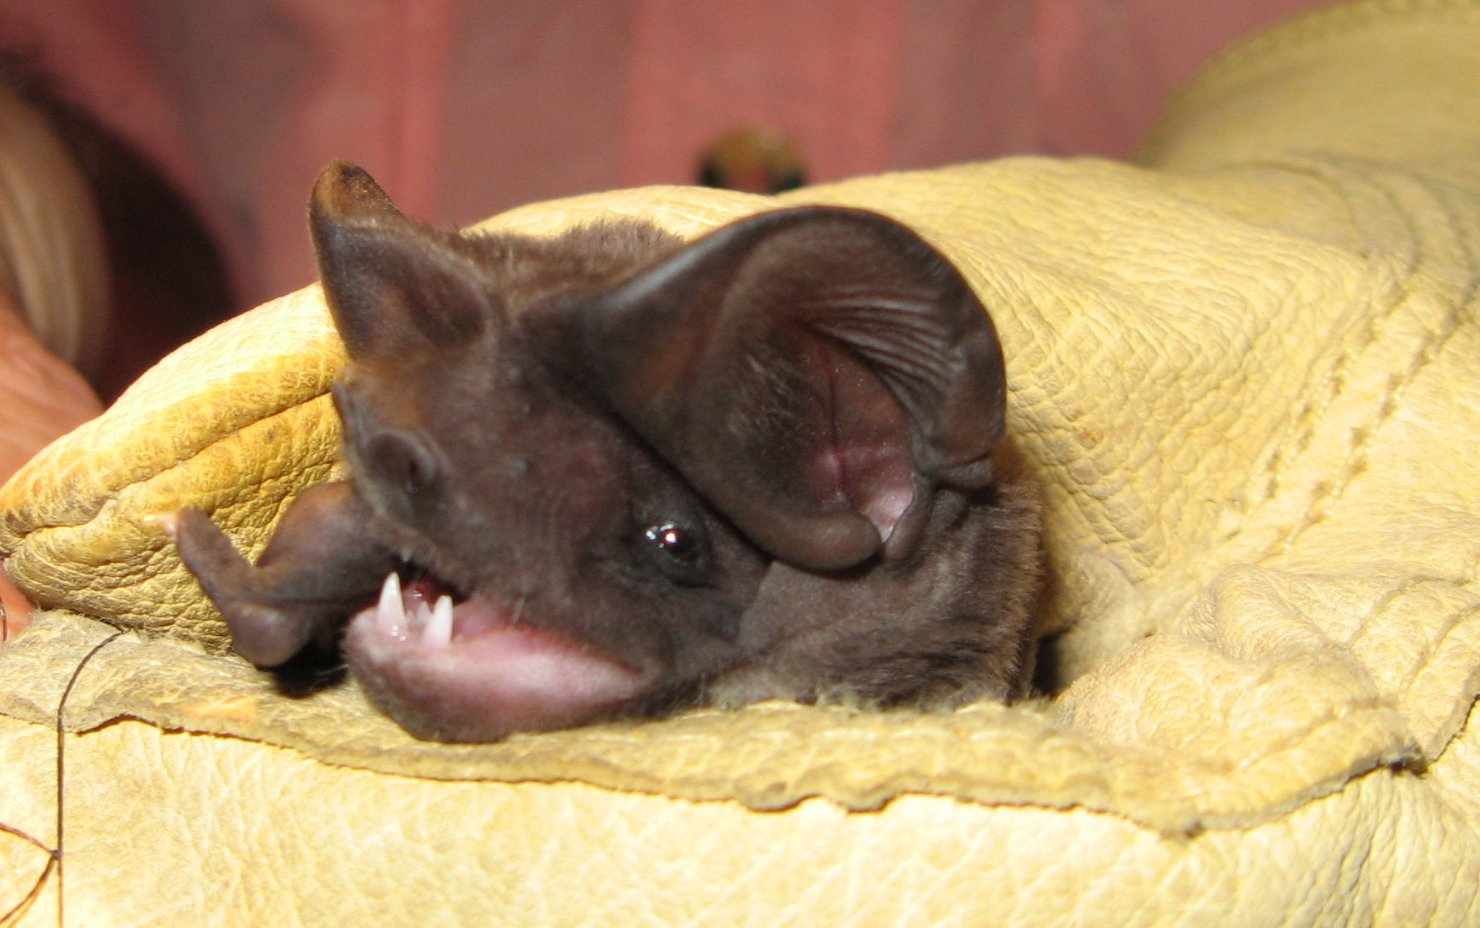 Bonneted Bat